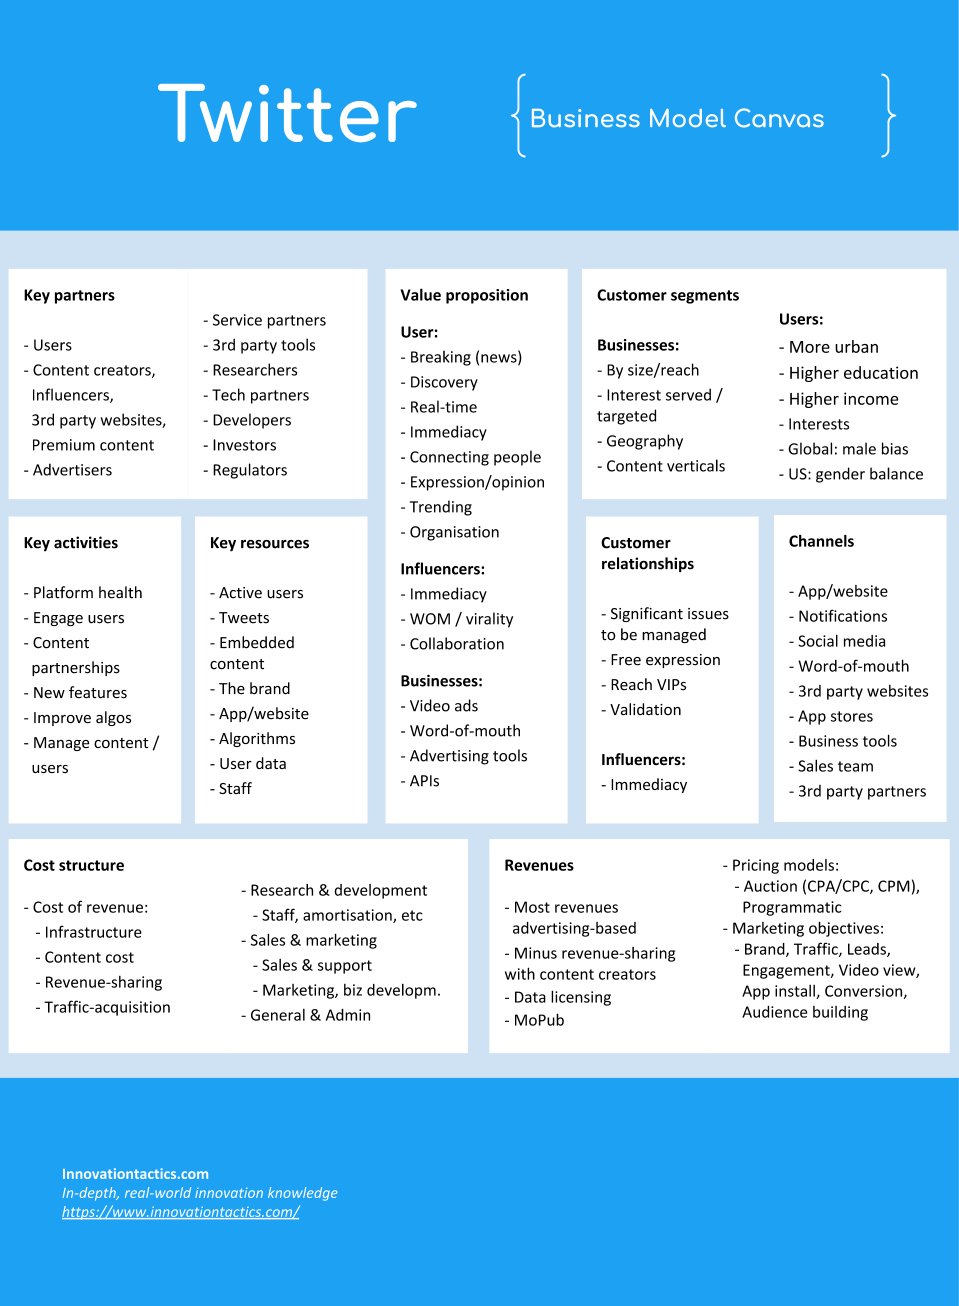 Twitter business model canvas ... but there is much more to learn (click image if you want to know more)